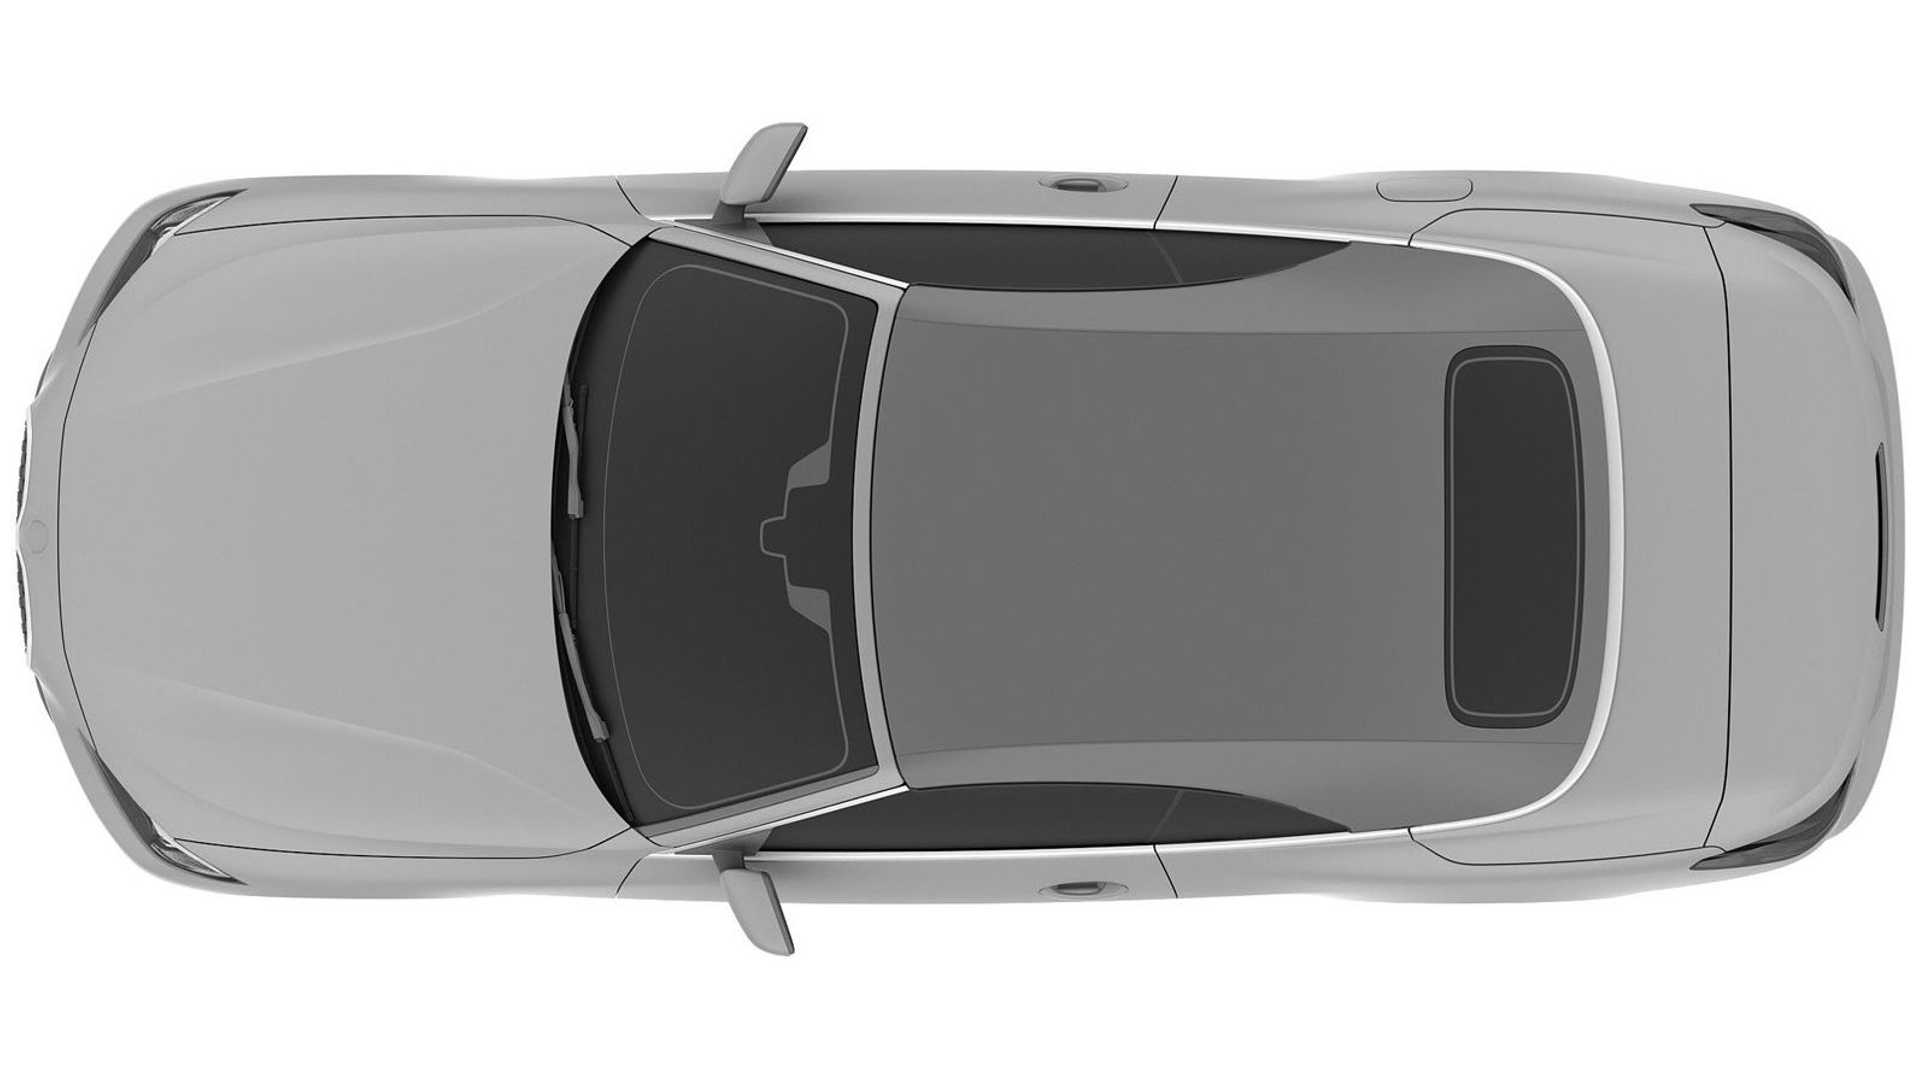 2022 Bmw 4 Series Convertible Leaks Out Via Chinese Patent Bureau